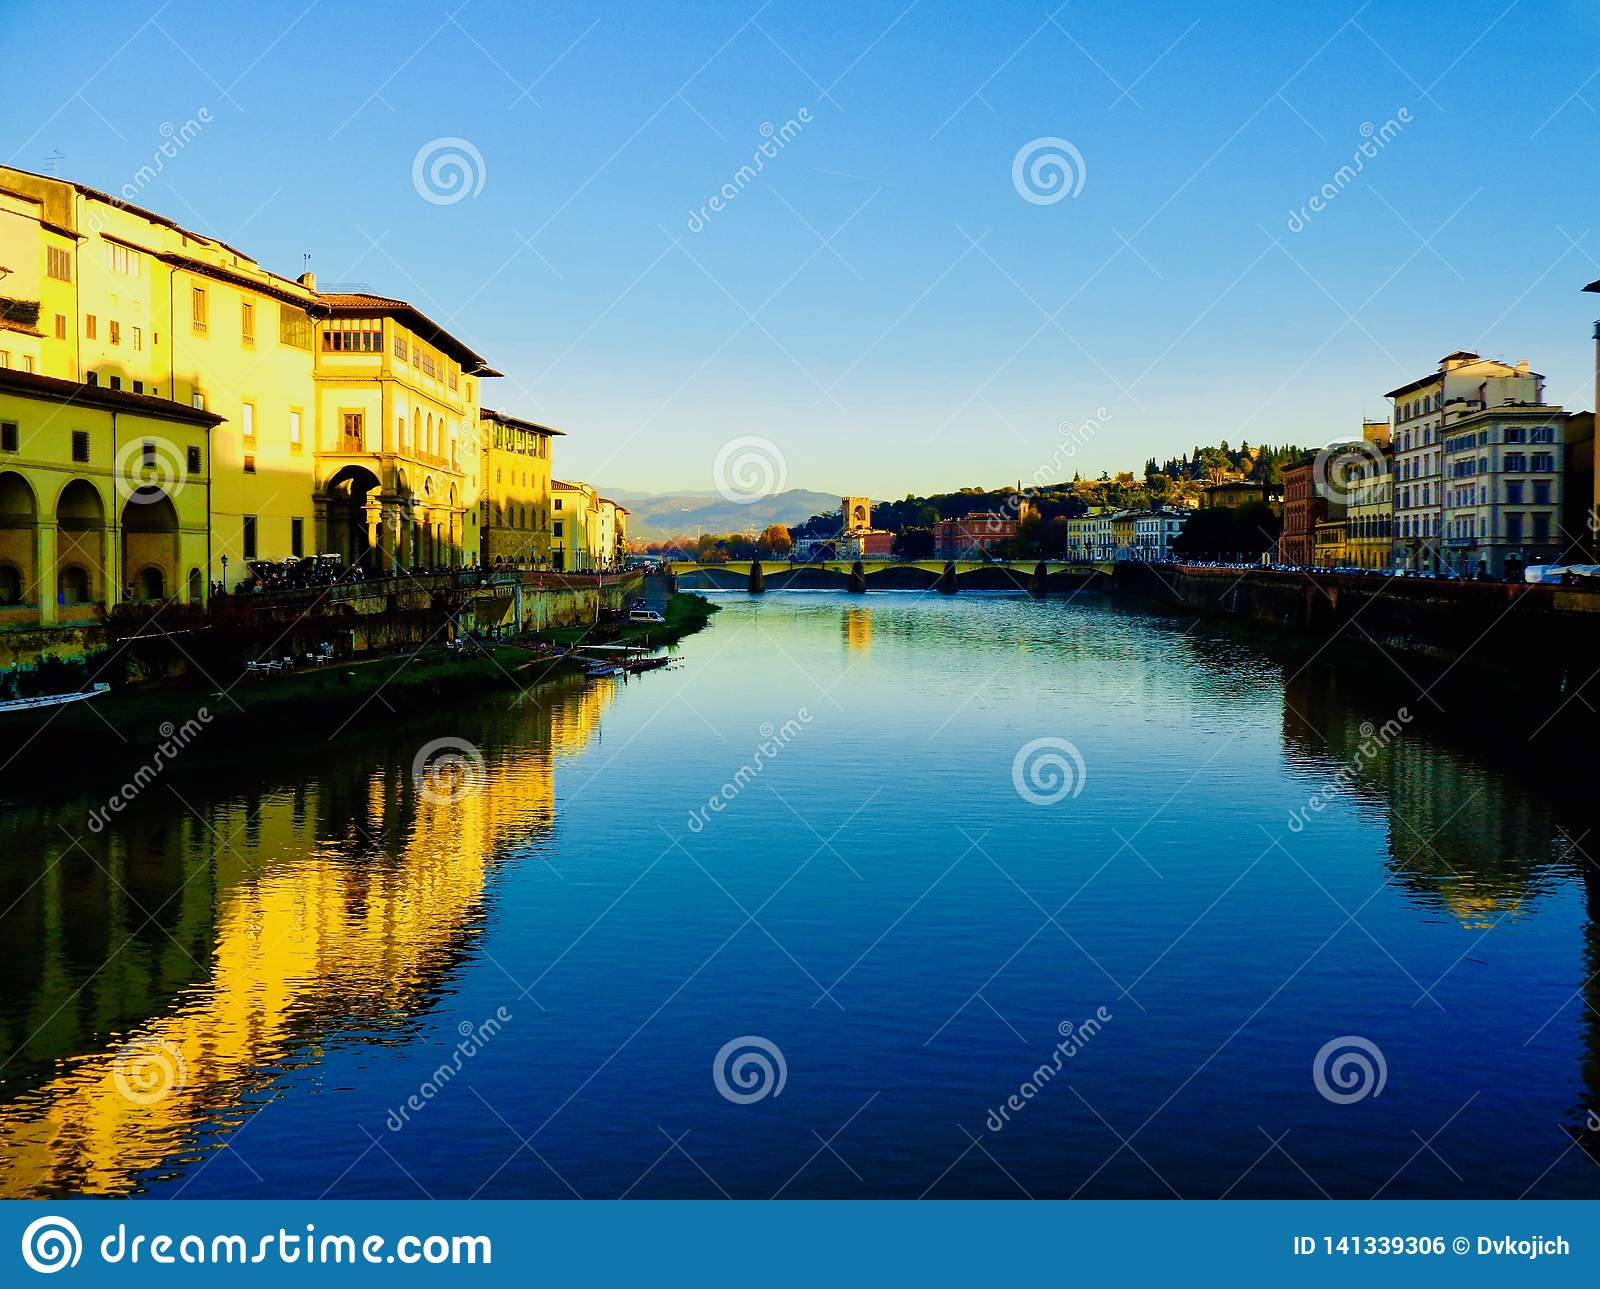 Sunset along the Arno River